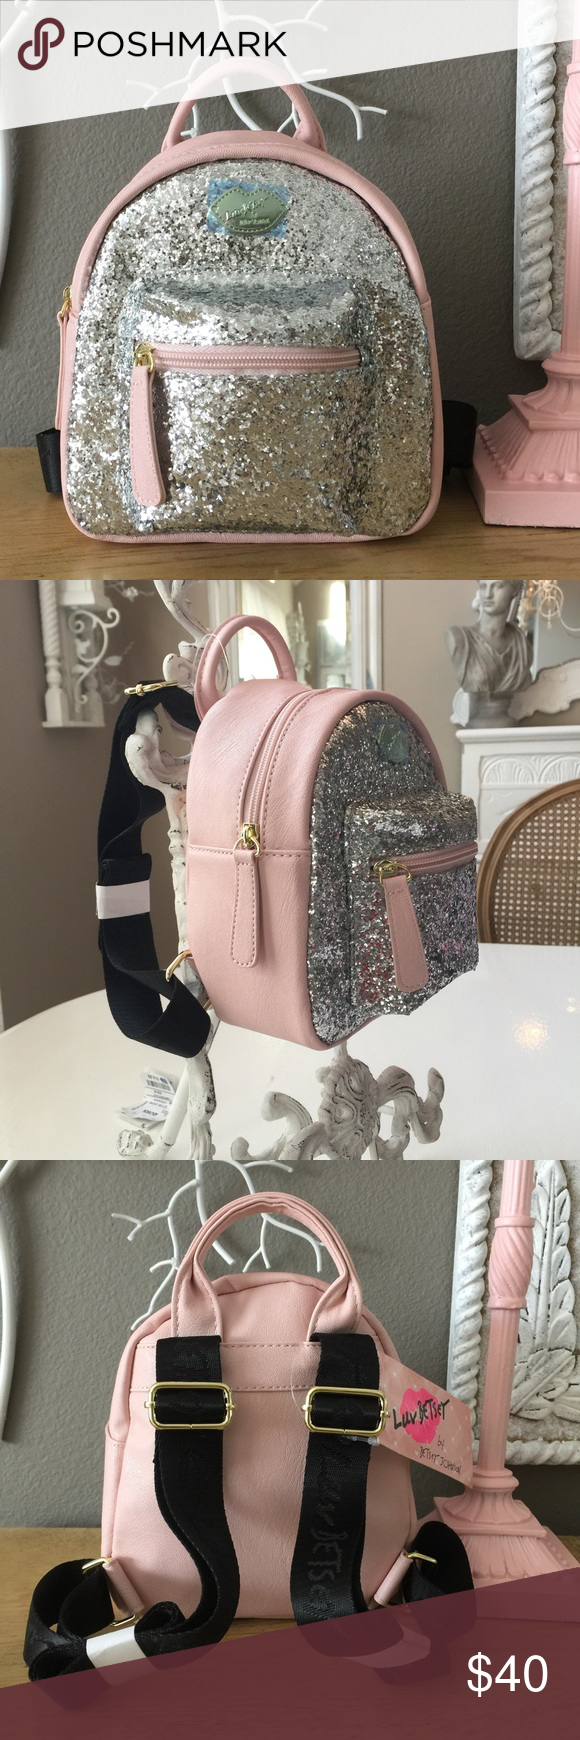 cce994570e 👑New👑 Betsey Blush Silver Glitz Backpack Adorable 🎀Girls🎀 Blush and  silver glitz mini backpack with outside 5.5